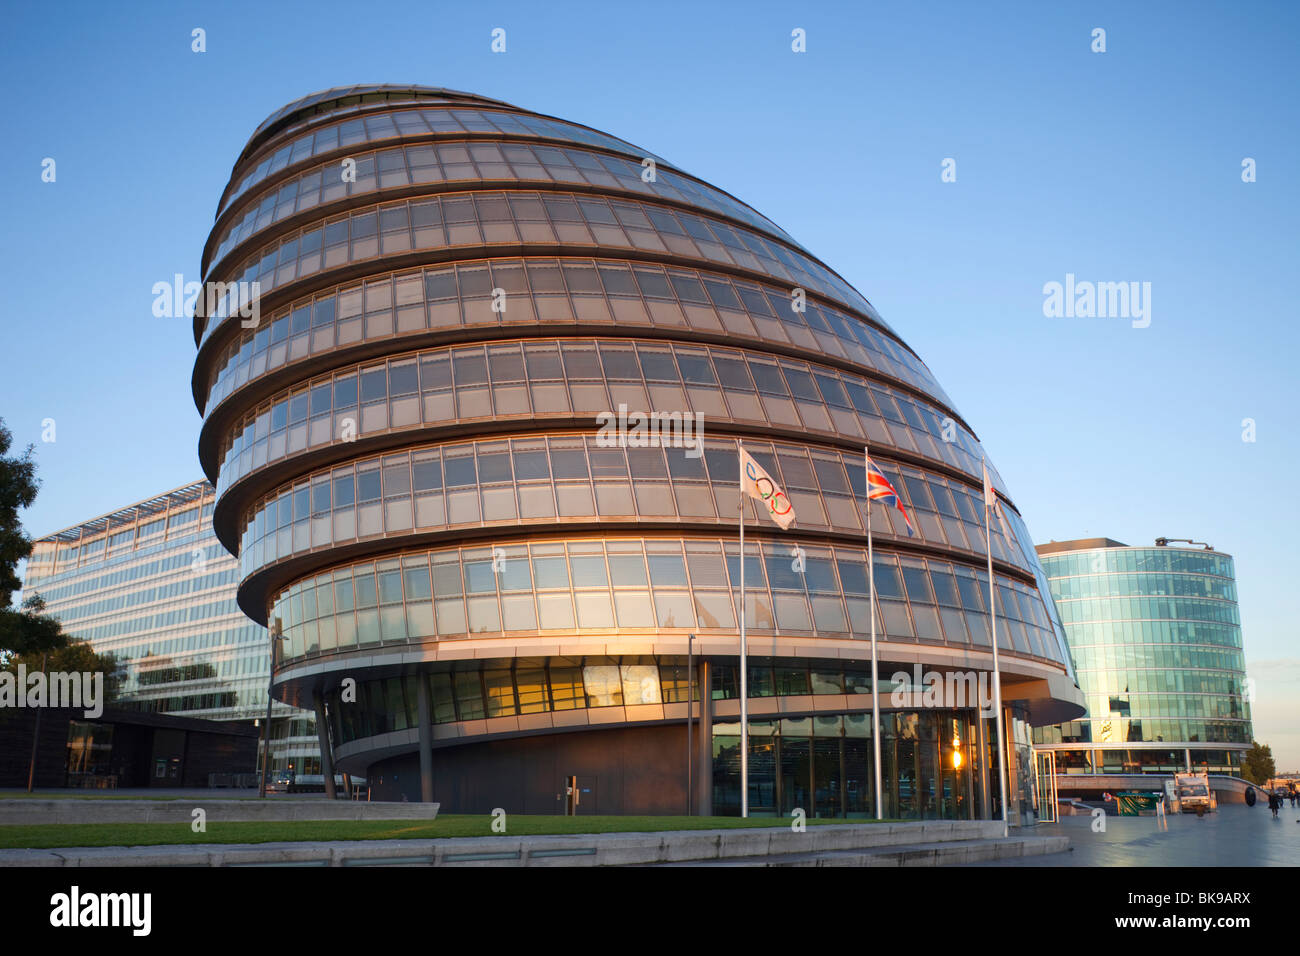 Olympic flag fluttering by the City Hall, Southwark, London, England - Stock Image